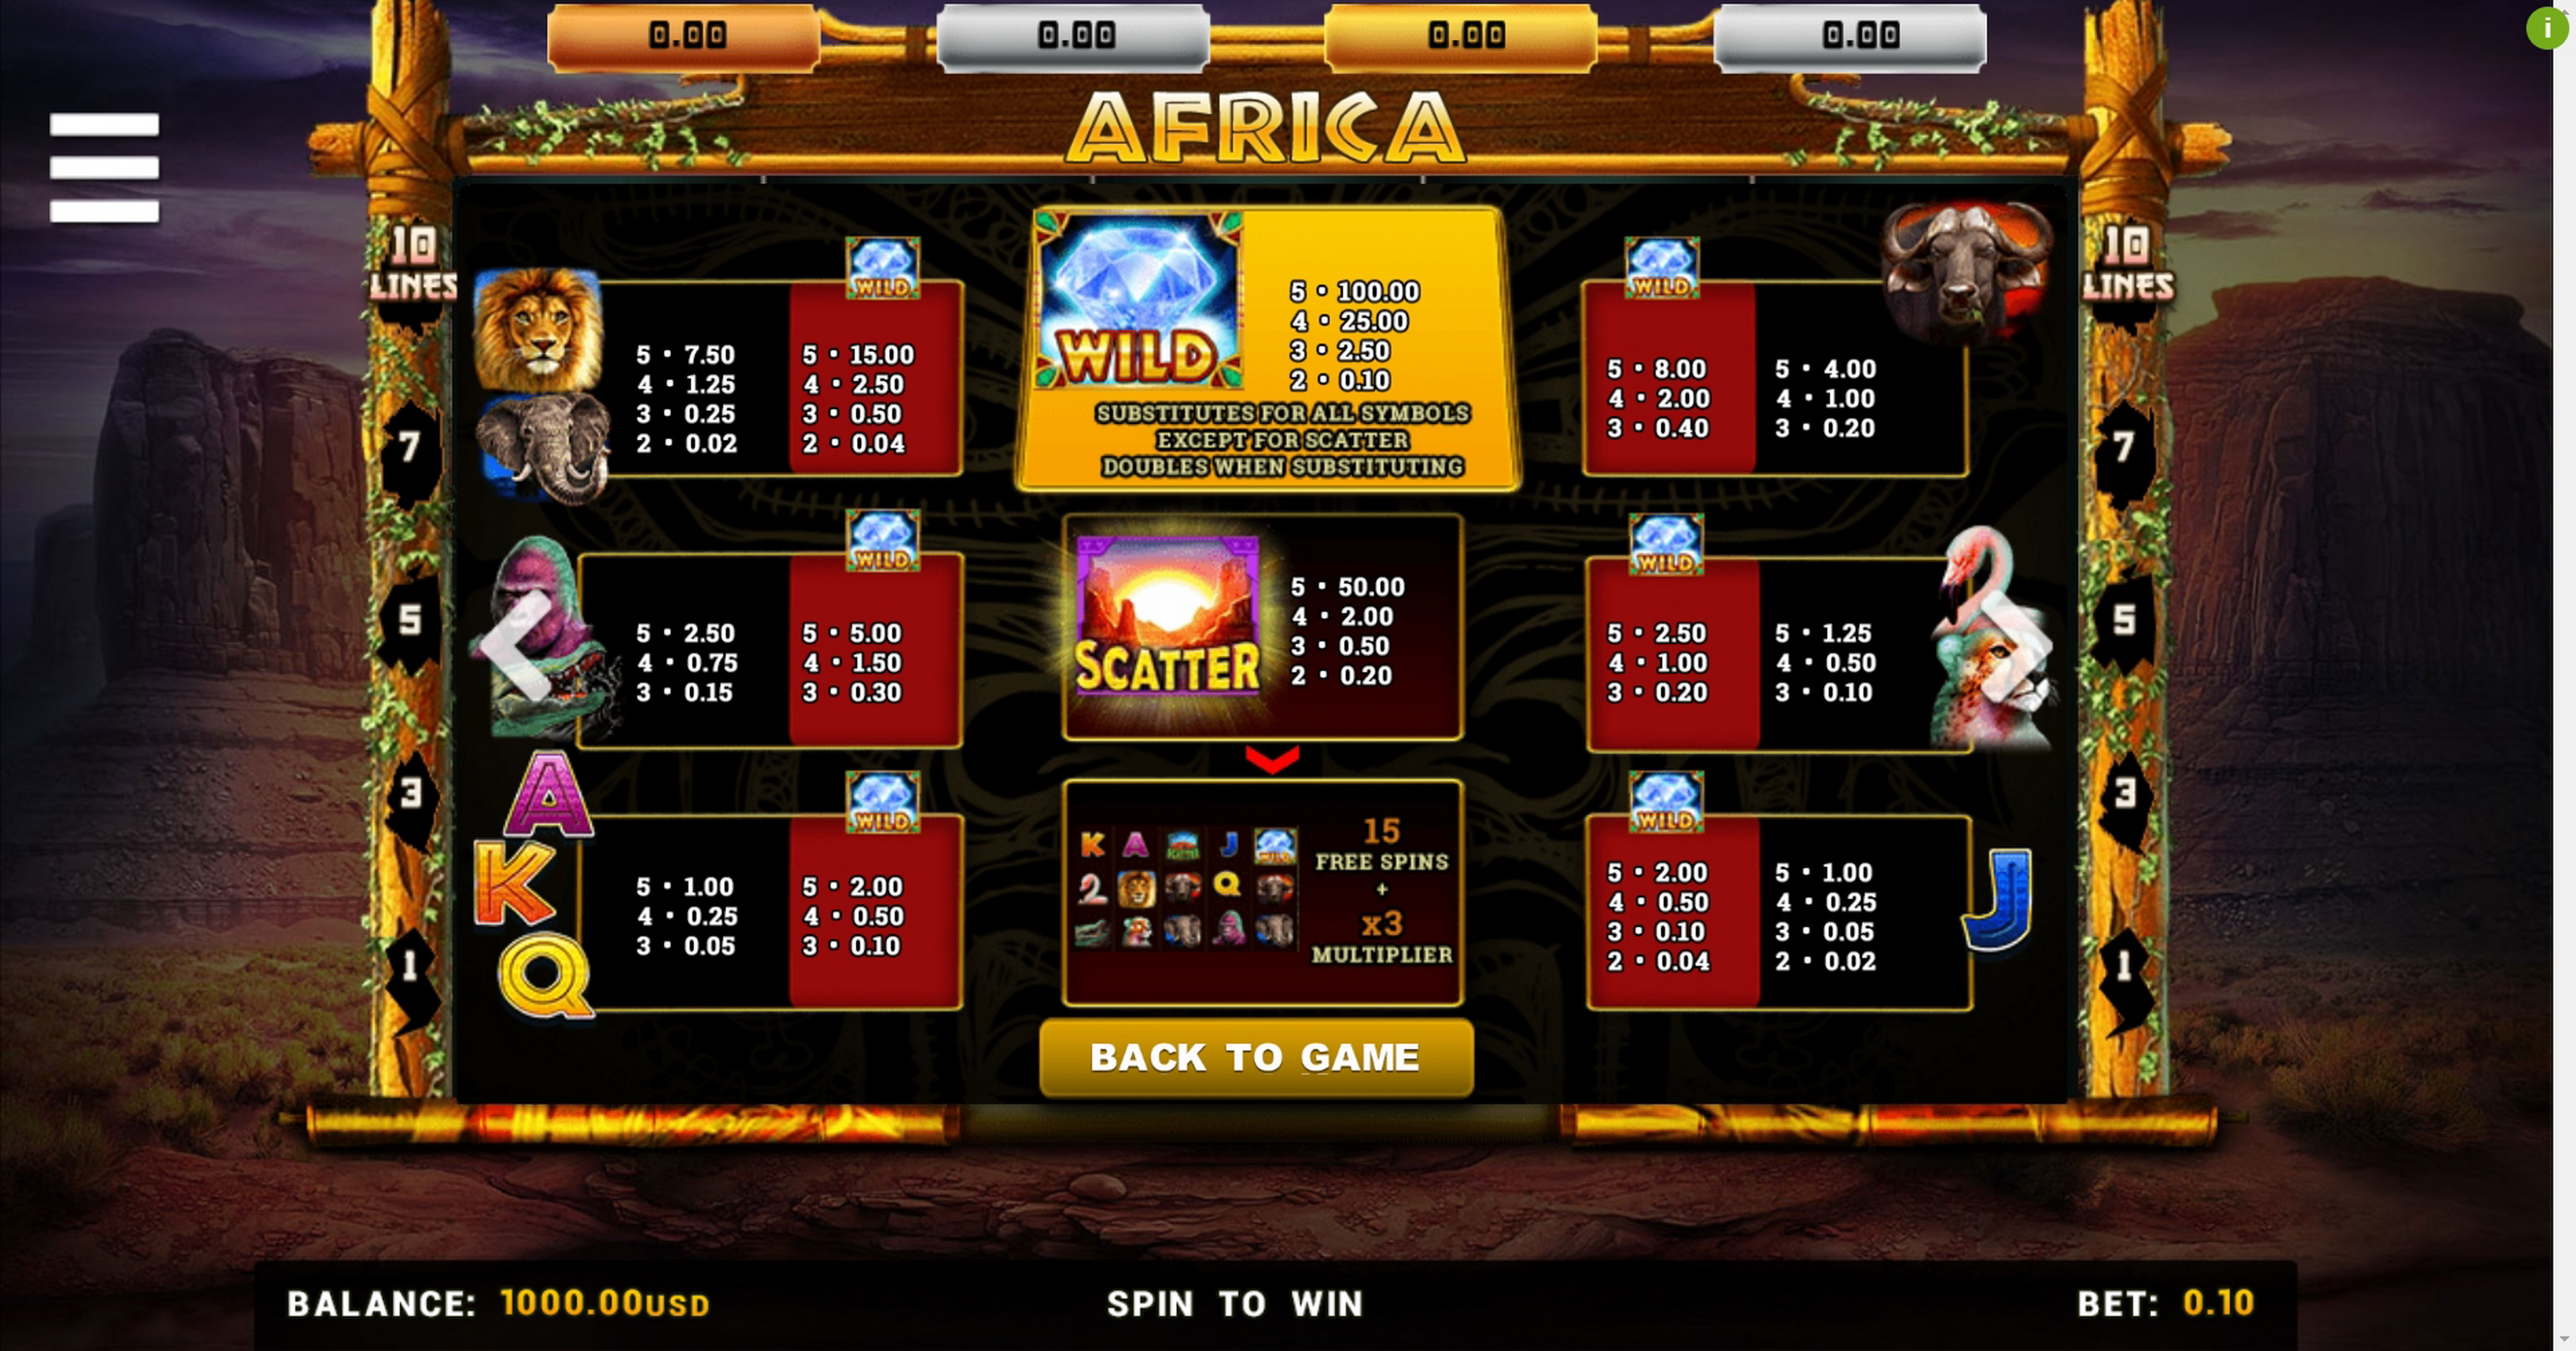 Info of Africa (Betsense) Slot Game by Betsense